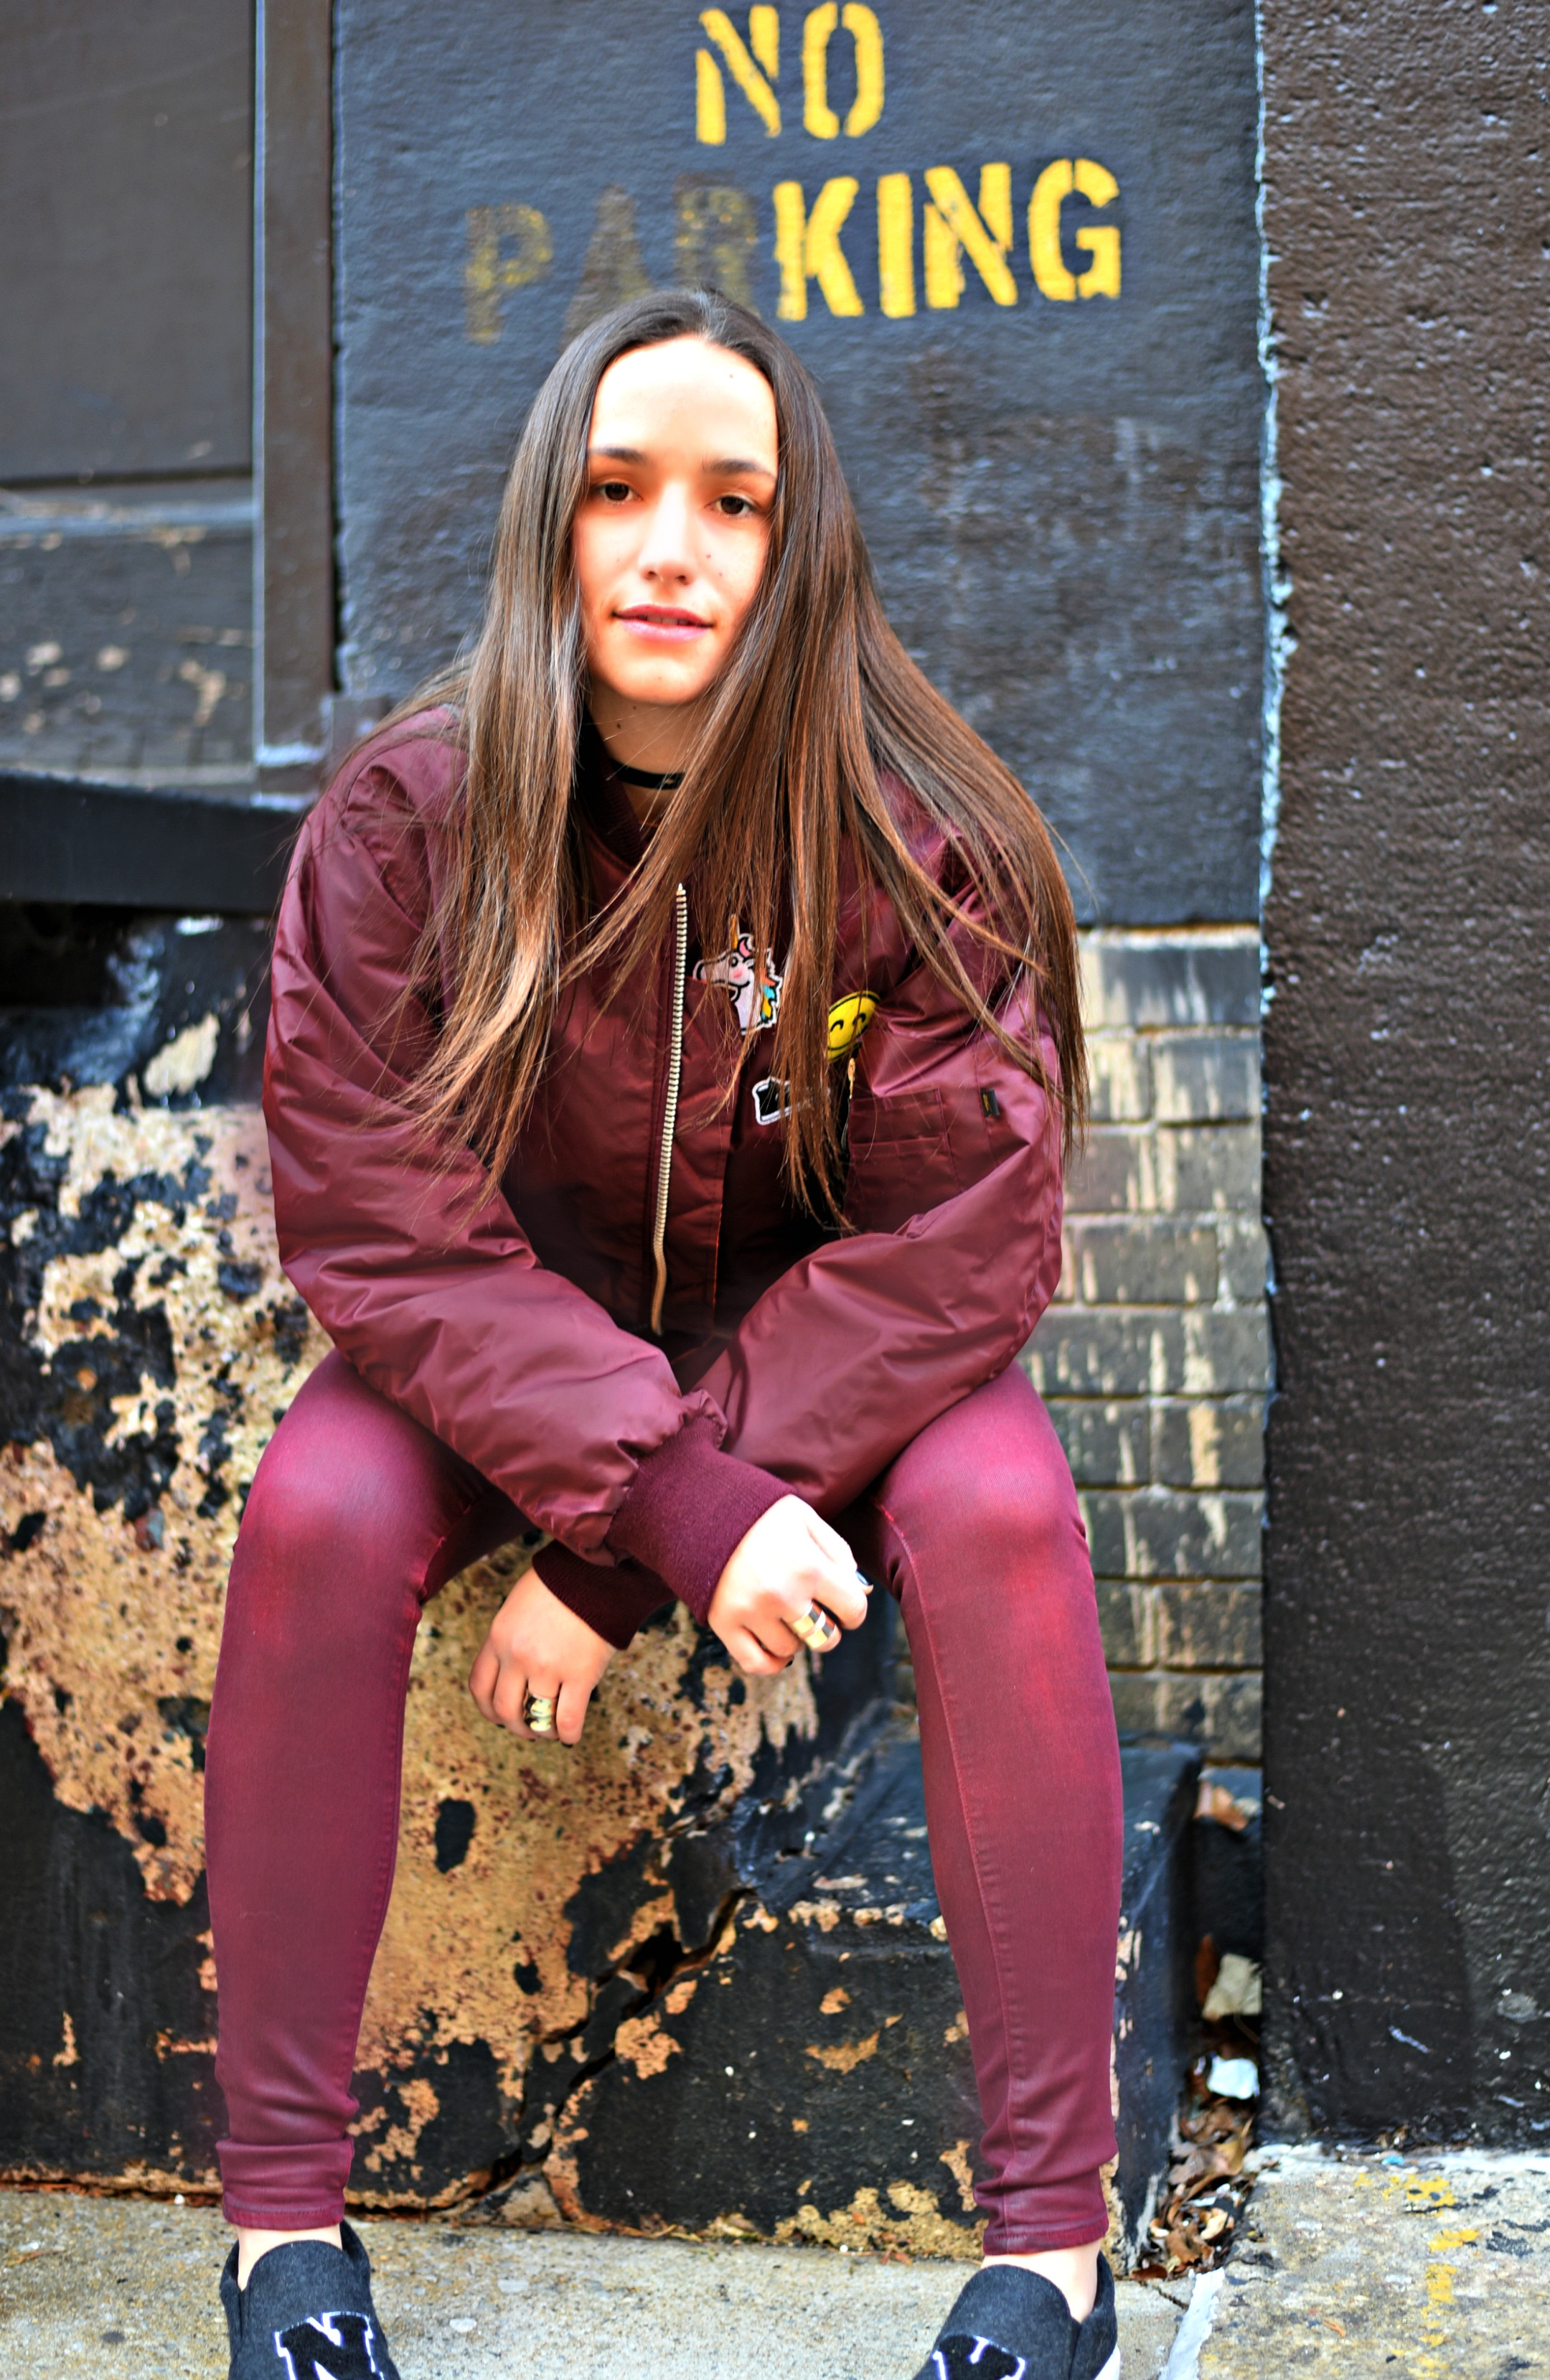 SOPHIE BICKLEY YIN 2MY YANG SISTER FASHION BLOGGERS NYC UNEMPLOYED DENIM PERSONALIZED BOMBER JACKET POST 3.jpg